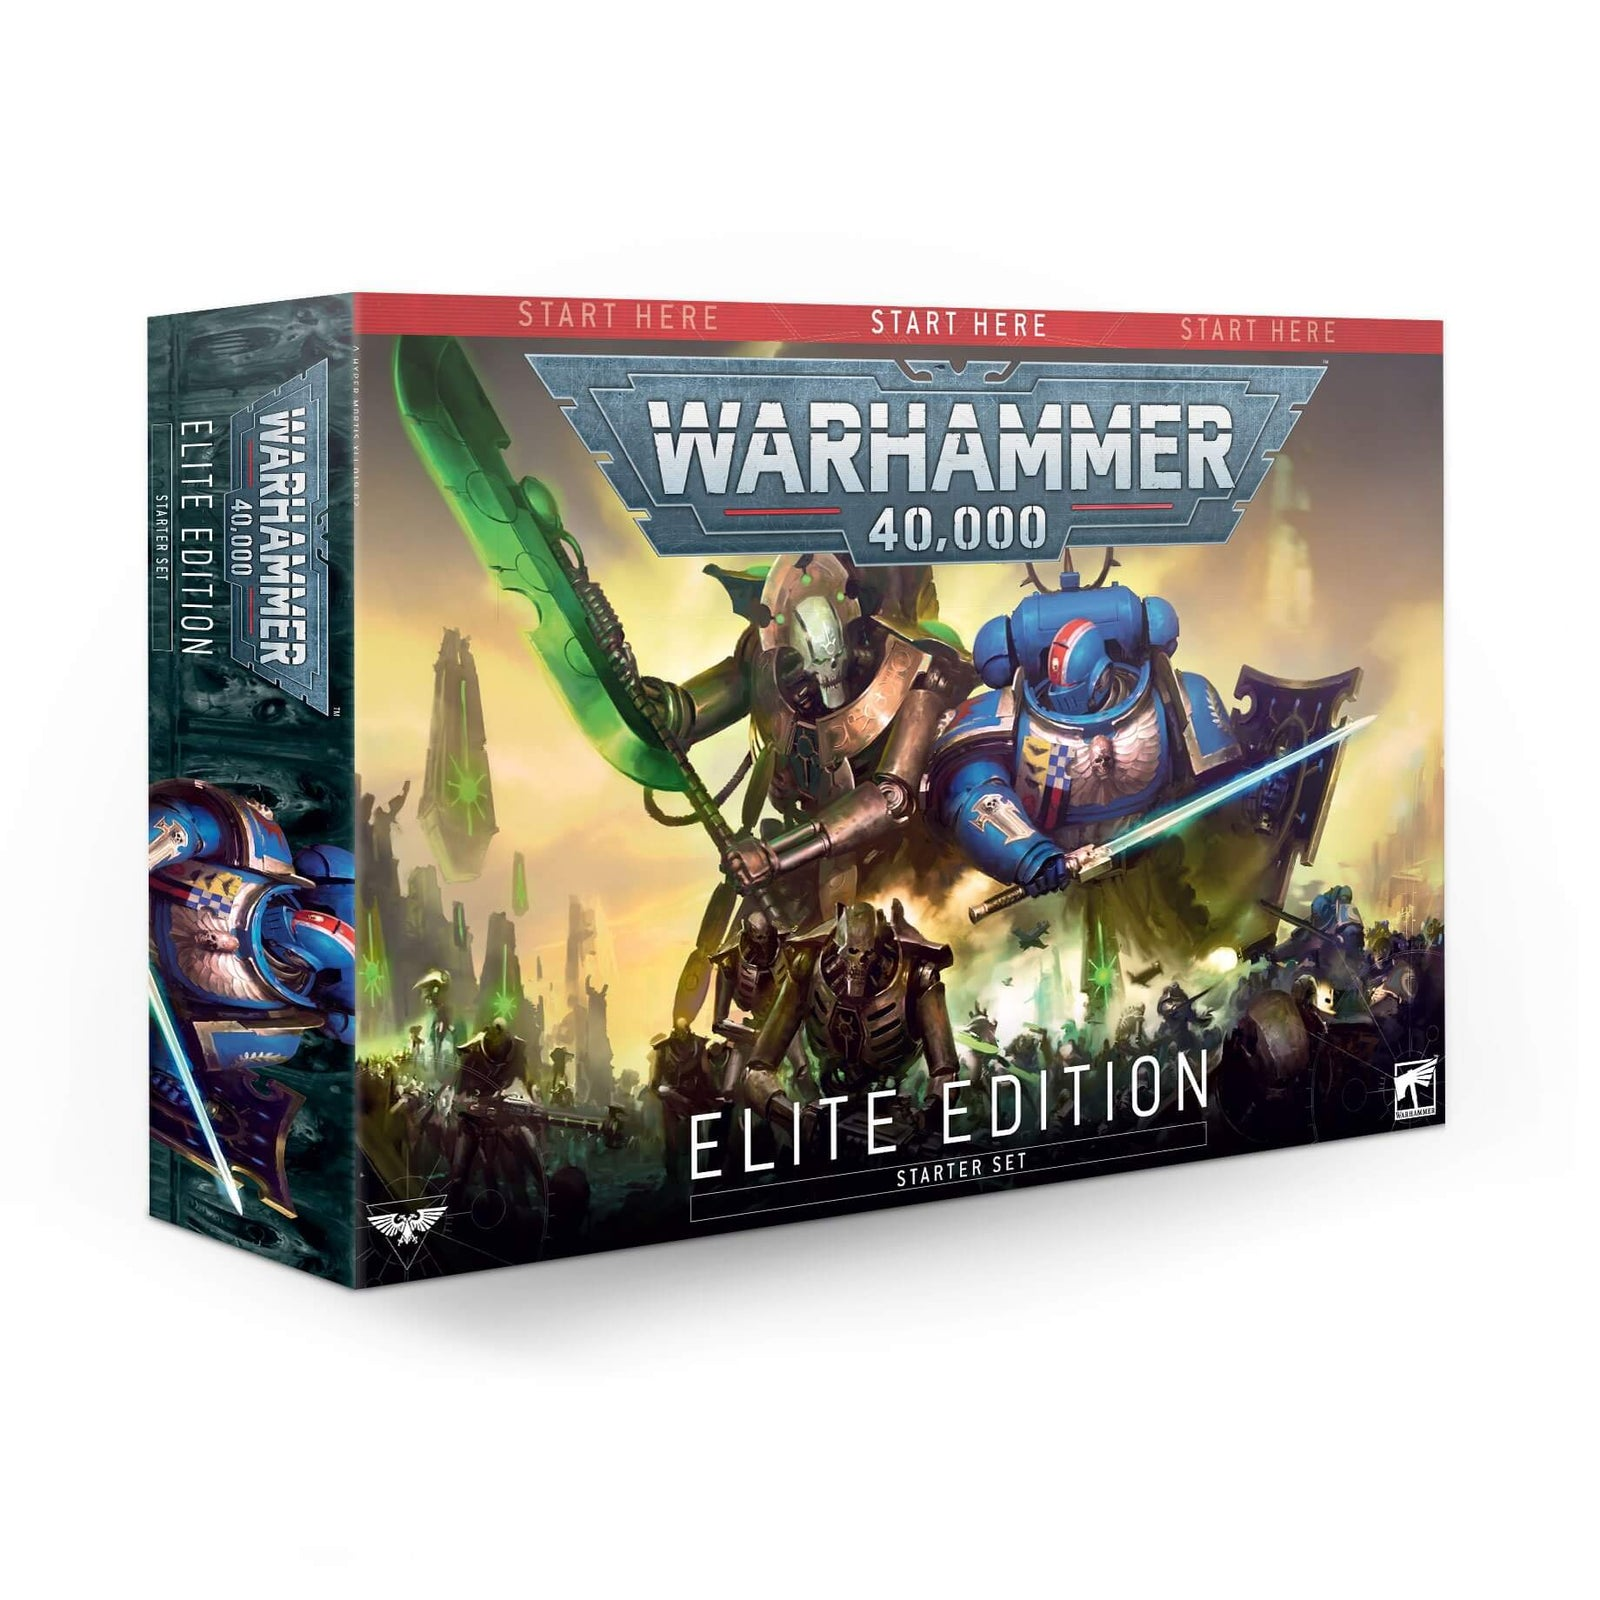 Box Image for Warhammer 40K Elite Edition